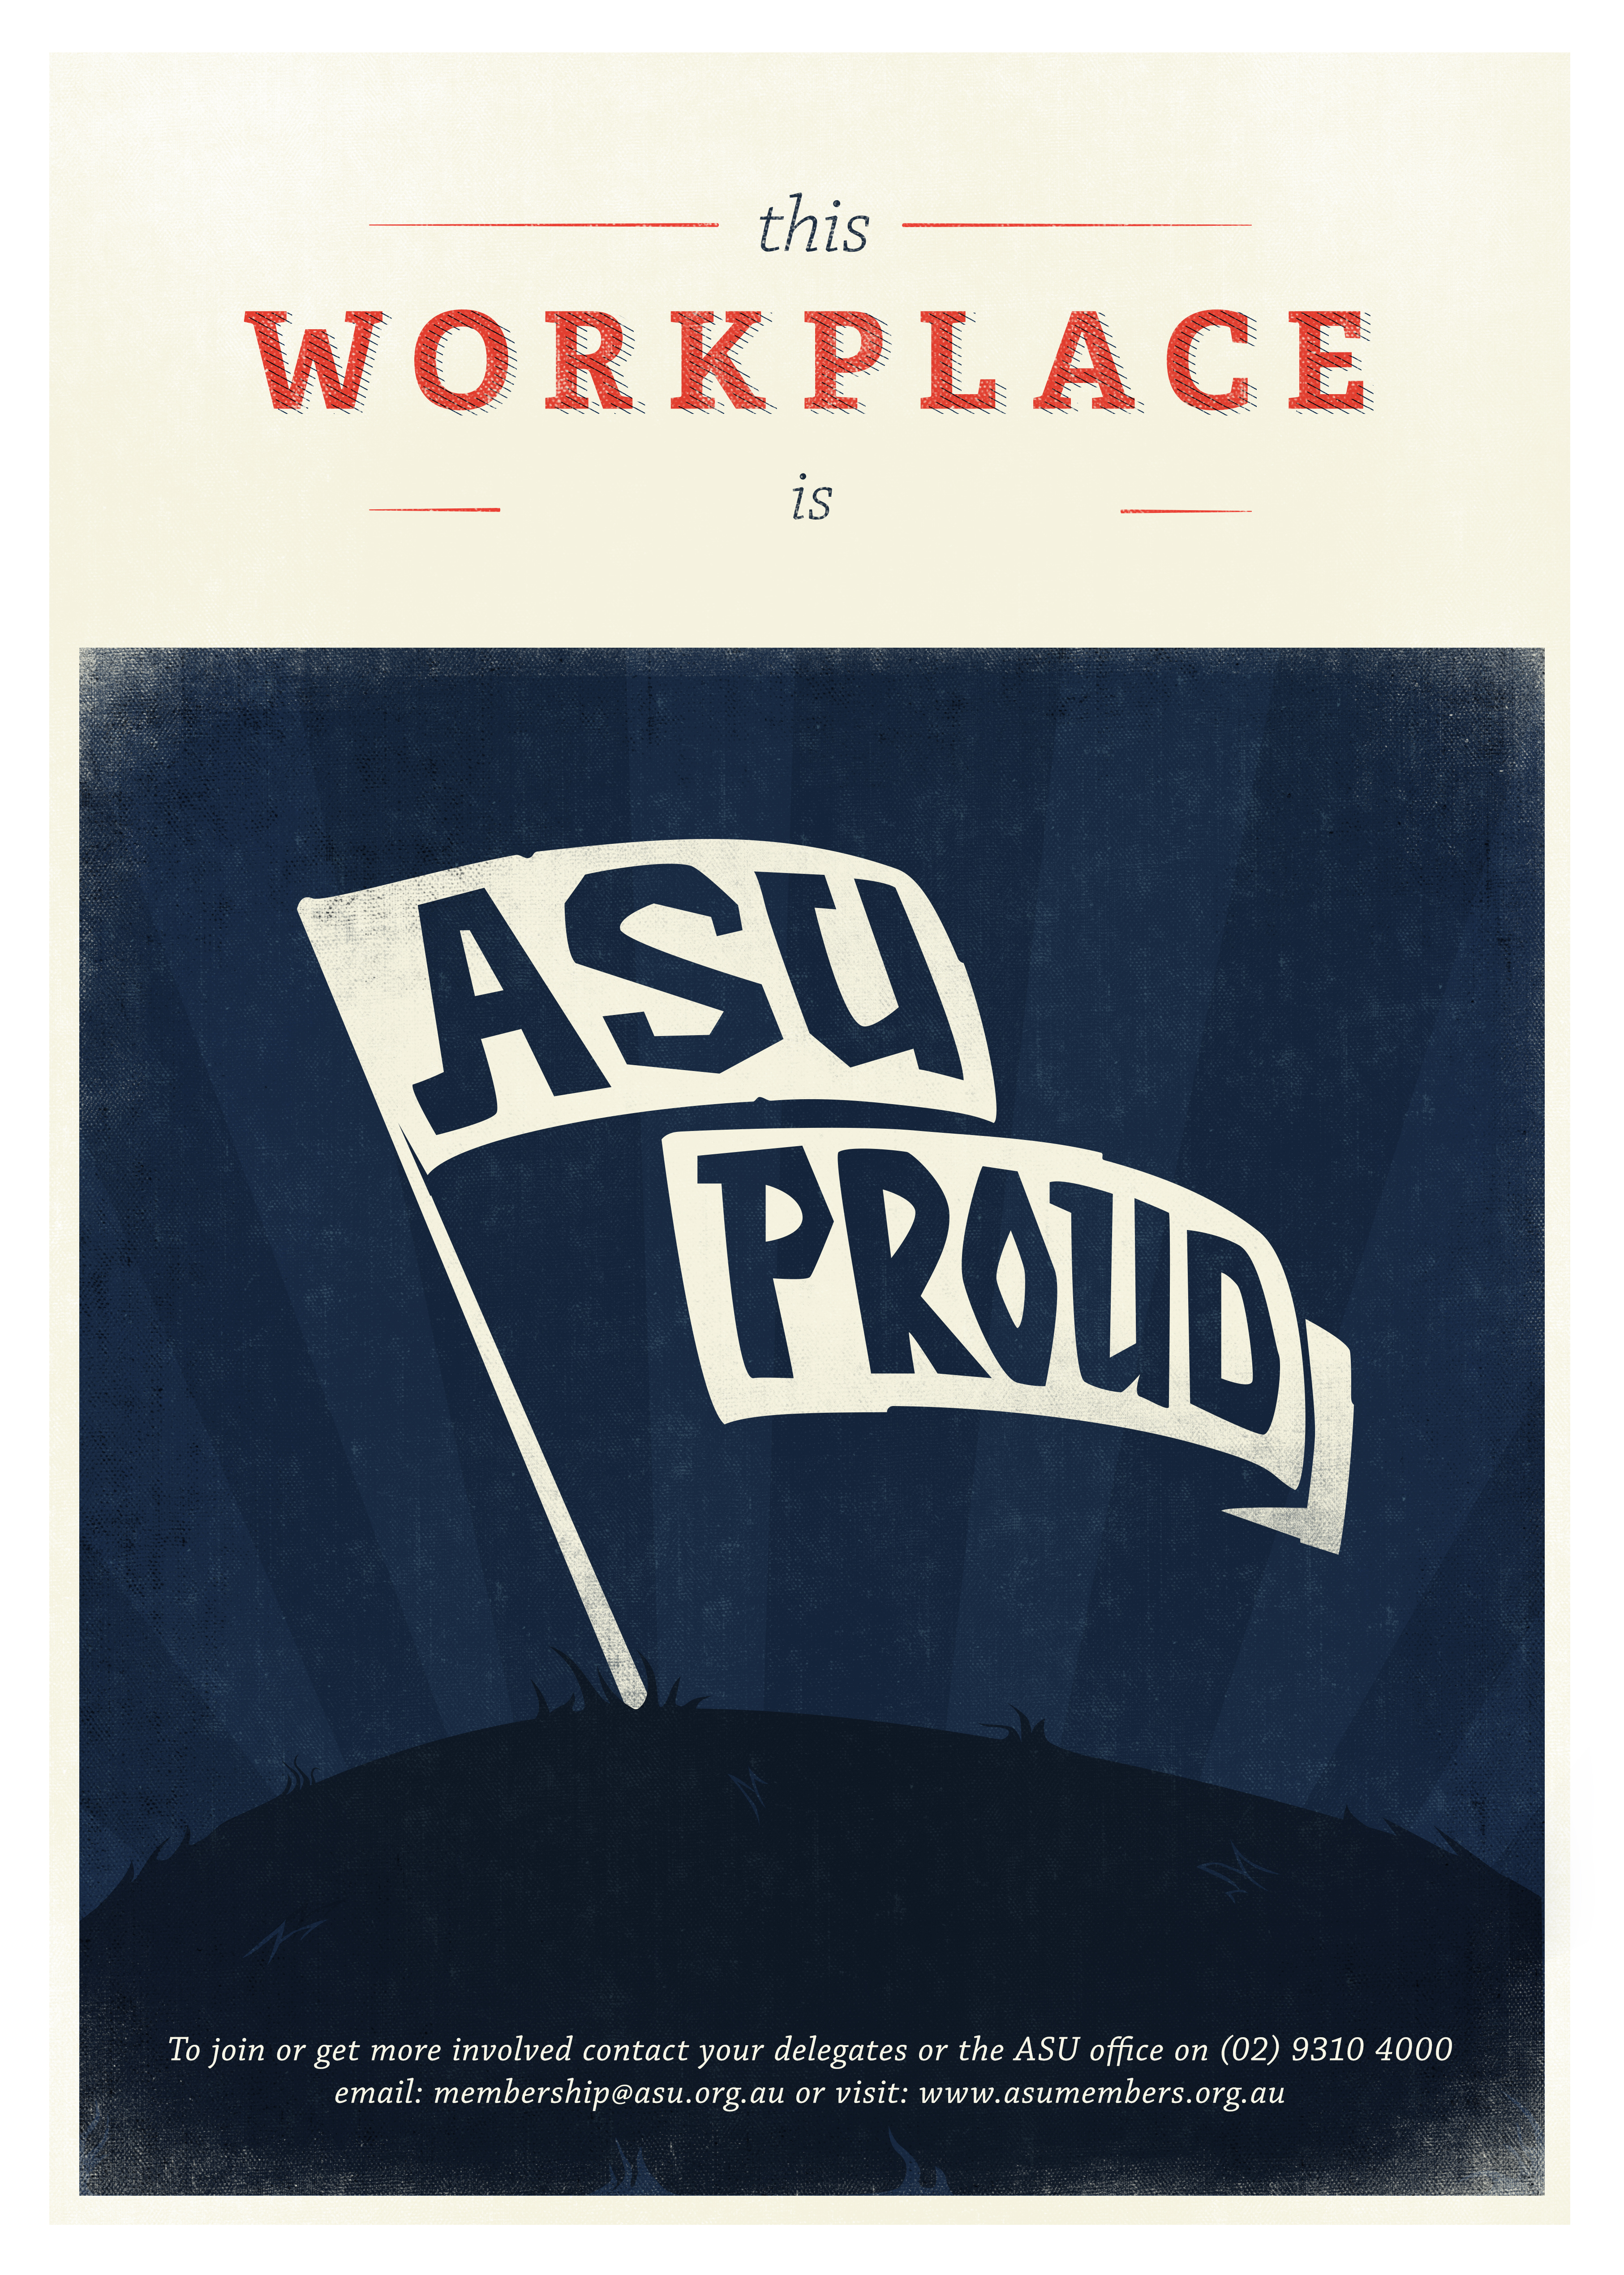 ASU_Proud_Workplace.jpg